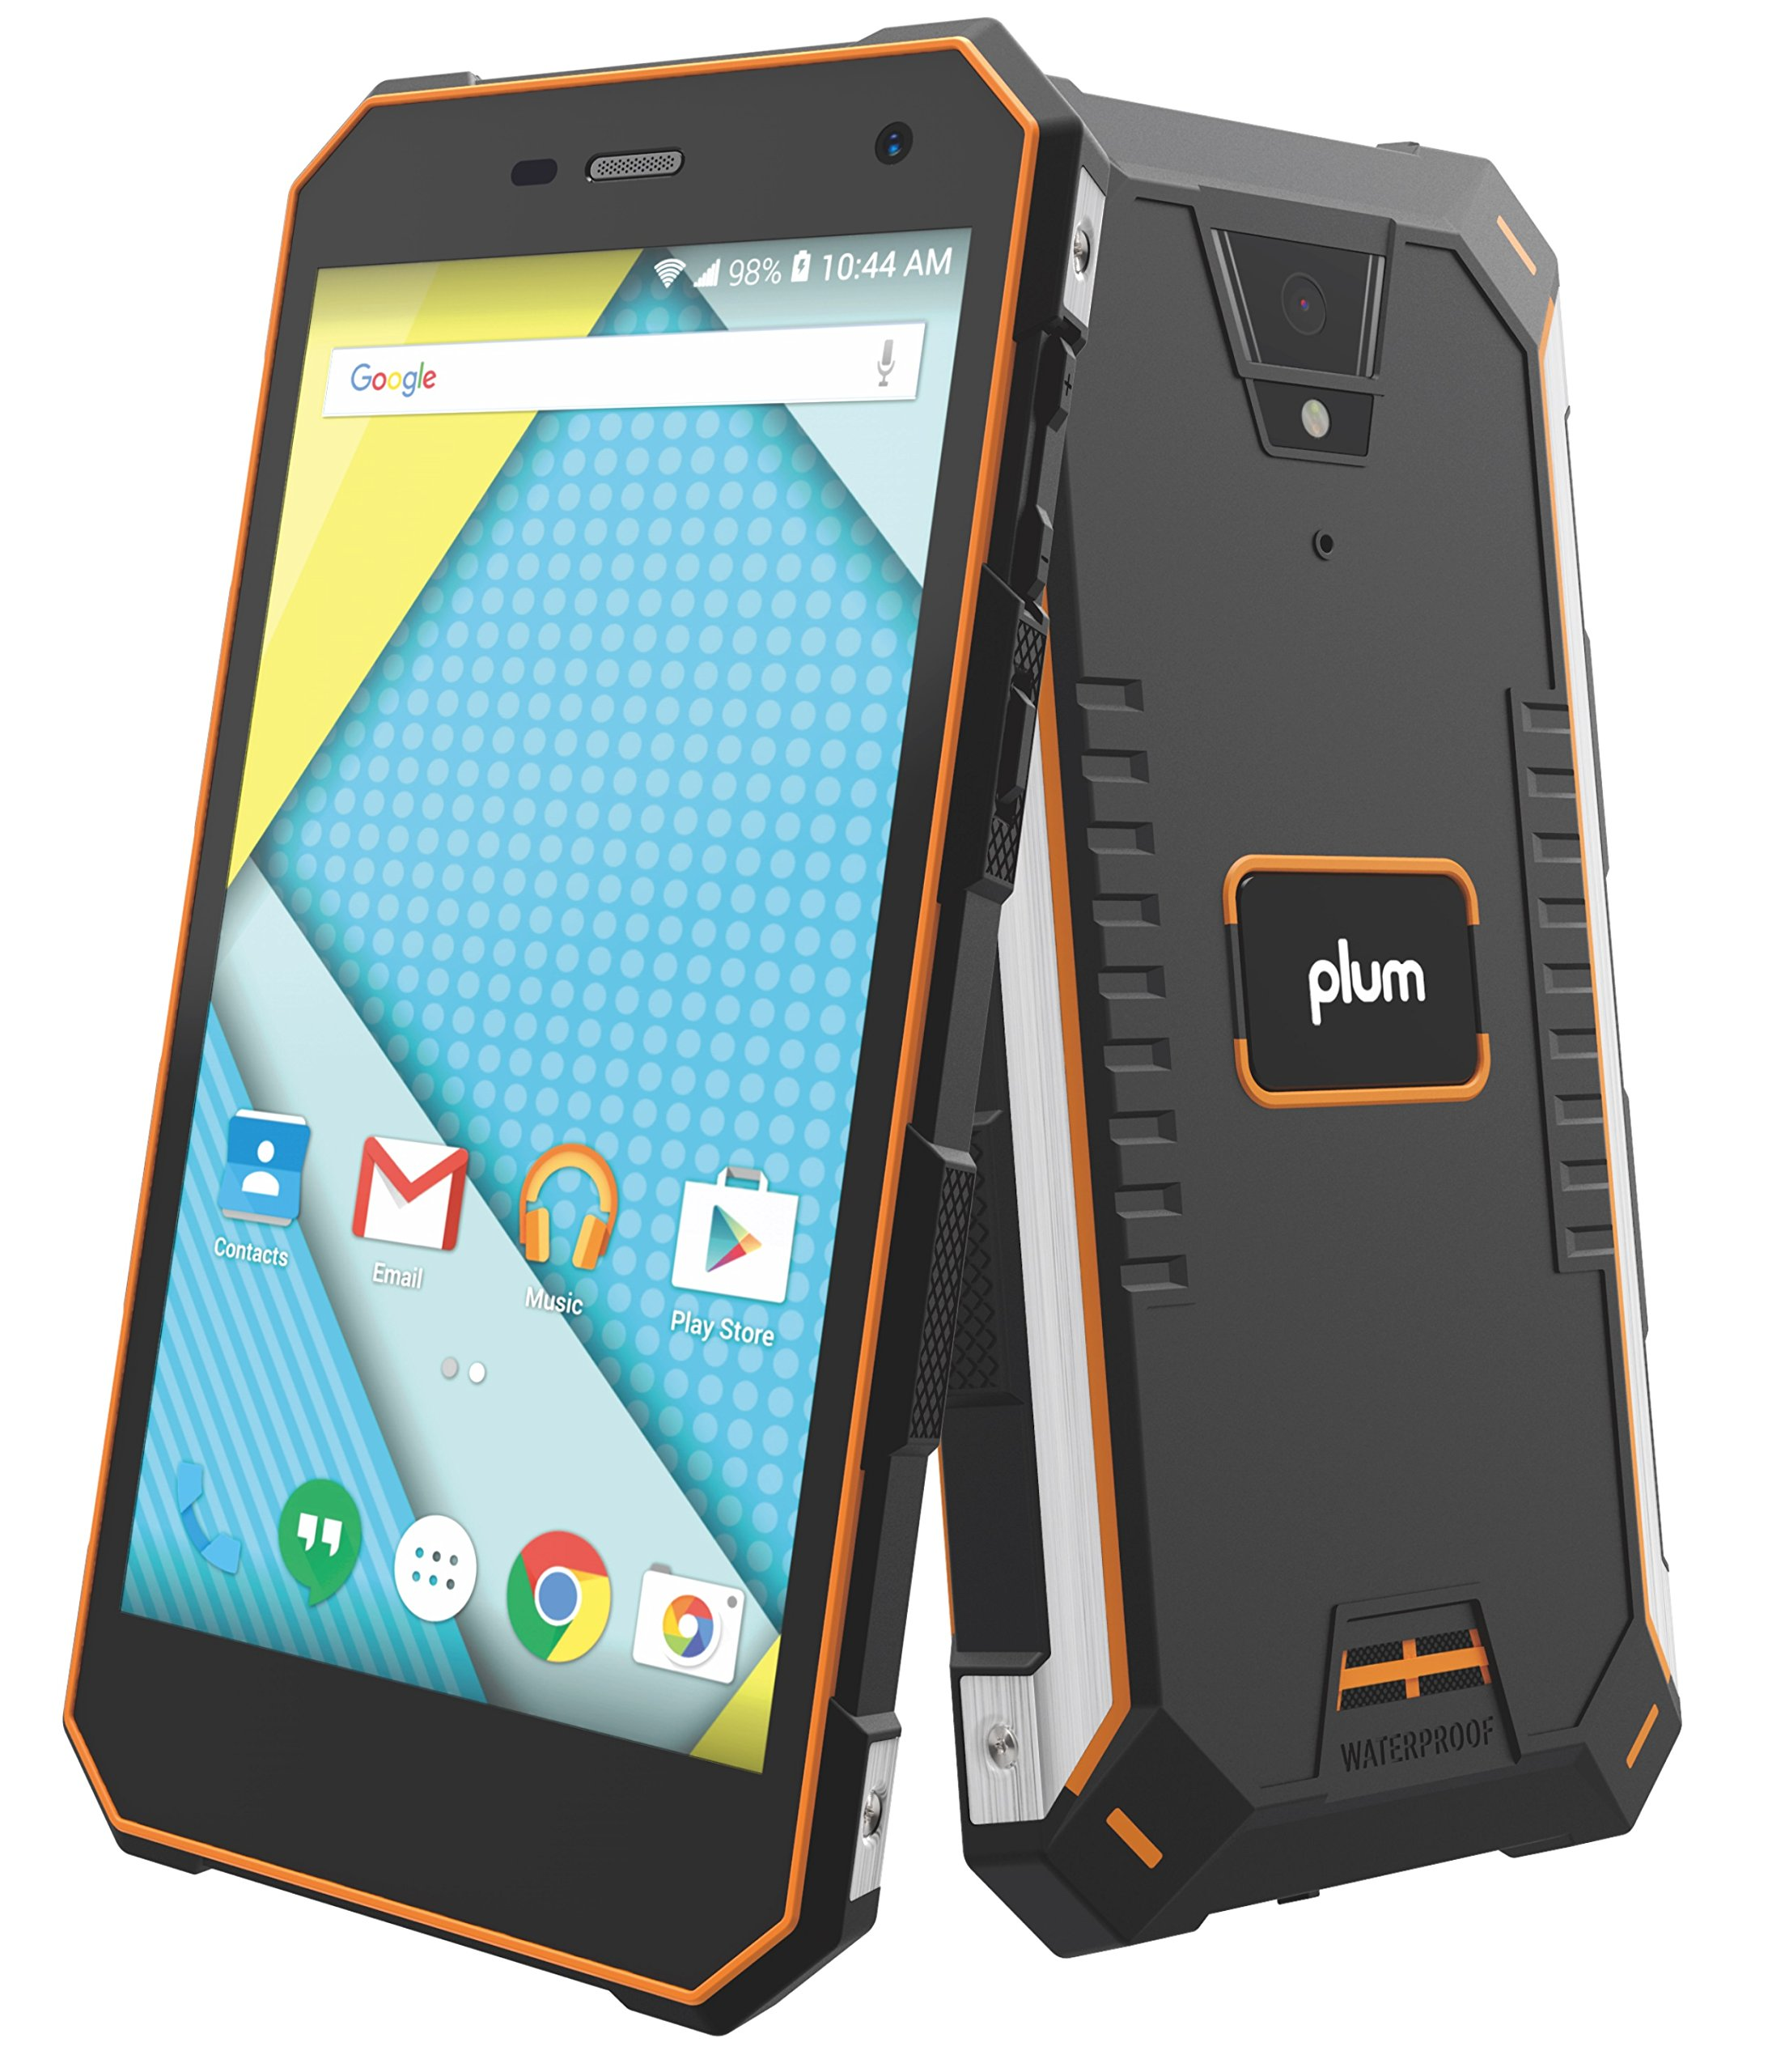 Plum Gator 4 - Rugged Smart Cell Phone Unlocked Android 4G GSM 13 MP Camera 5'' HD Display IP68 Military Grade Water Shock Proof 5000 mAh - Black/Org